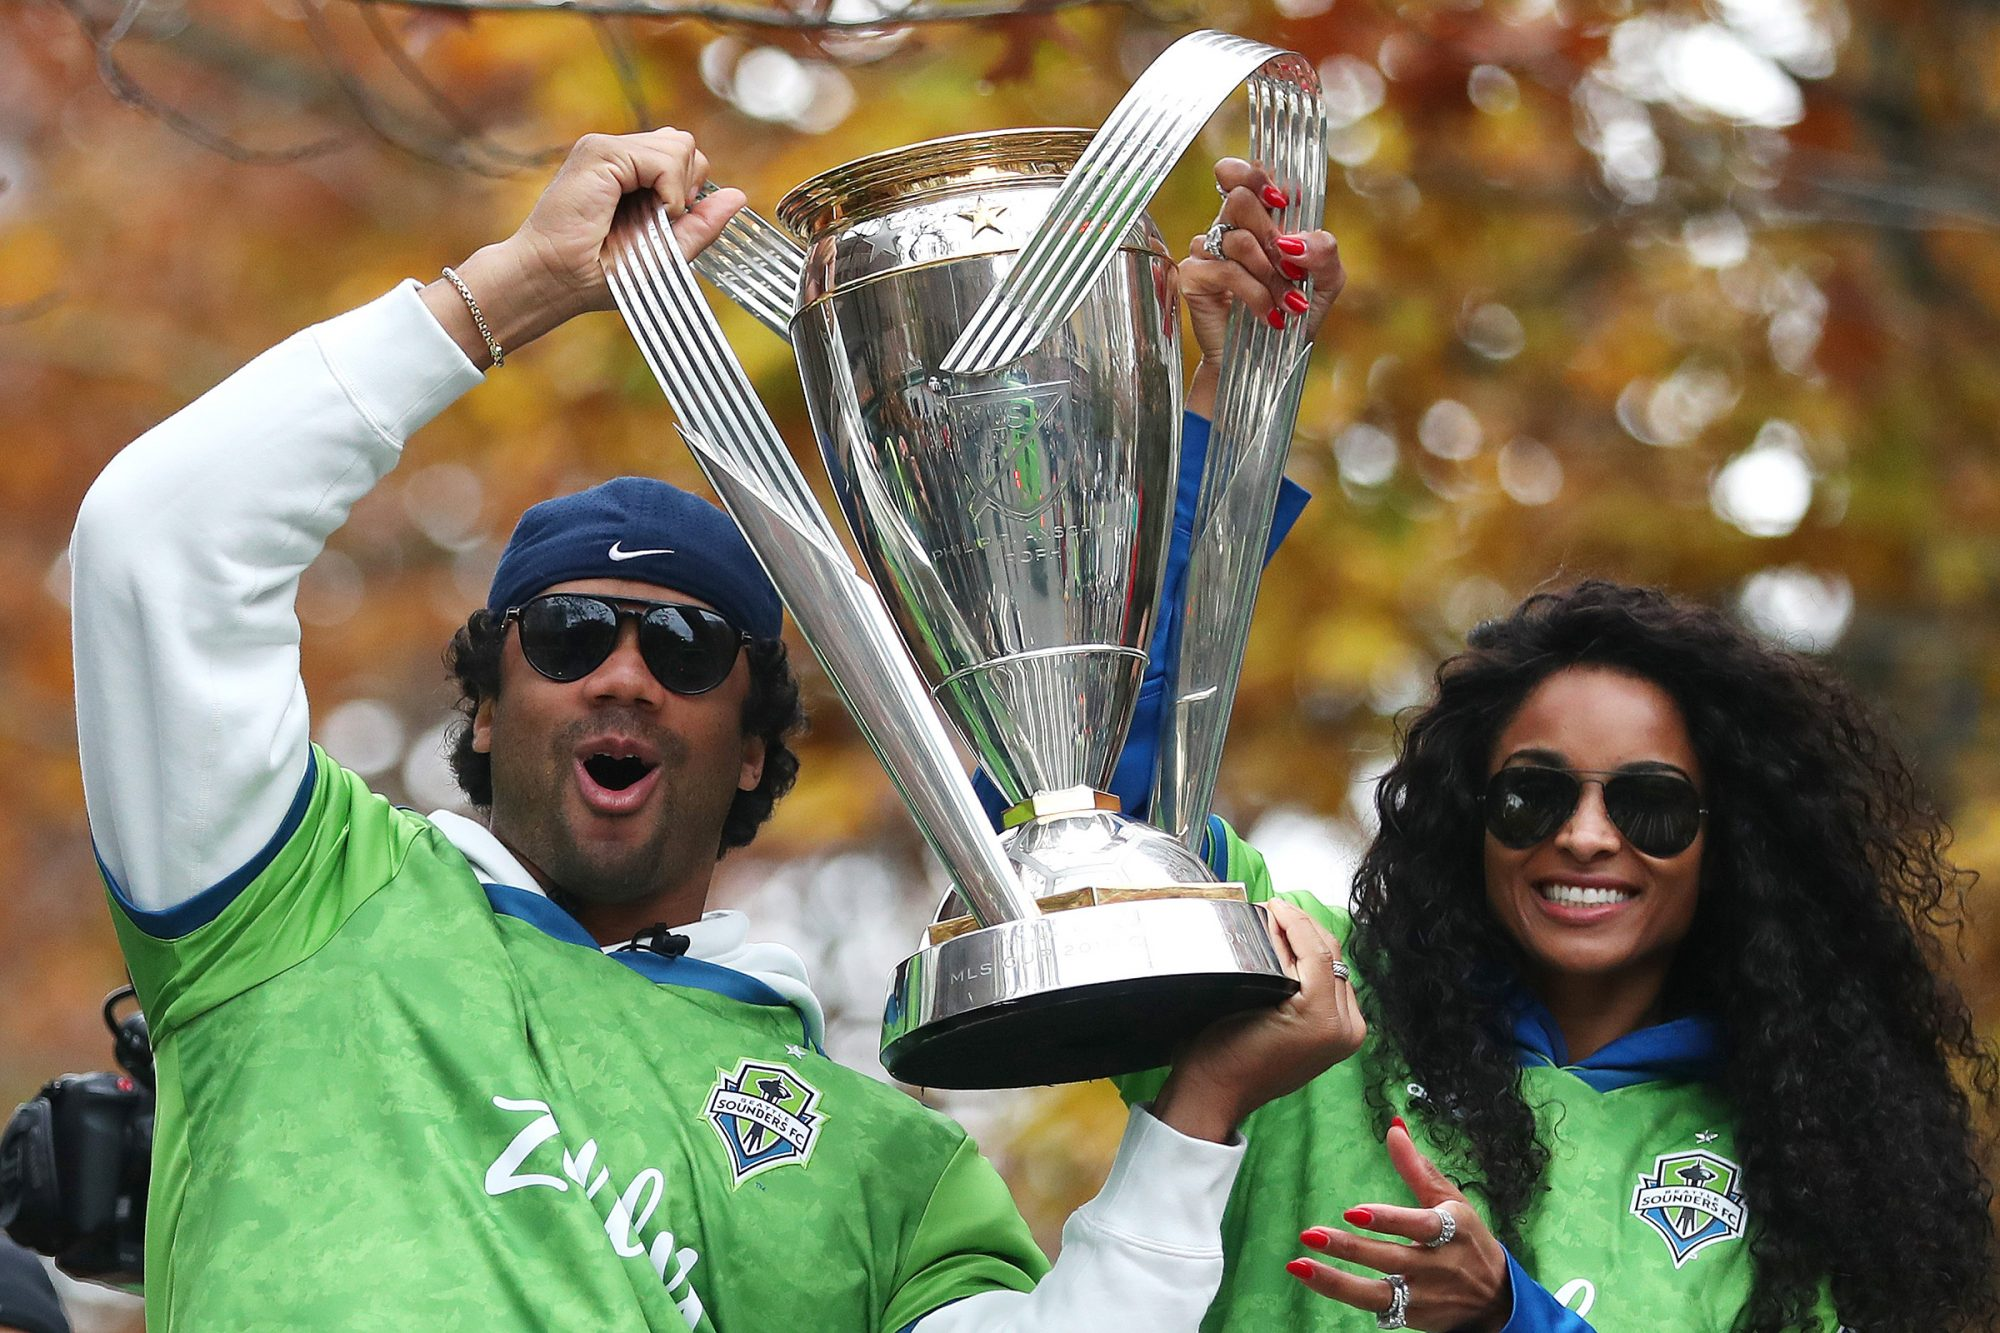 Seattle Sounders part owners Russell Wilson and Ciara show their support for the team during their MLS Cup victory parade on November 12, 2019 in Seattle